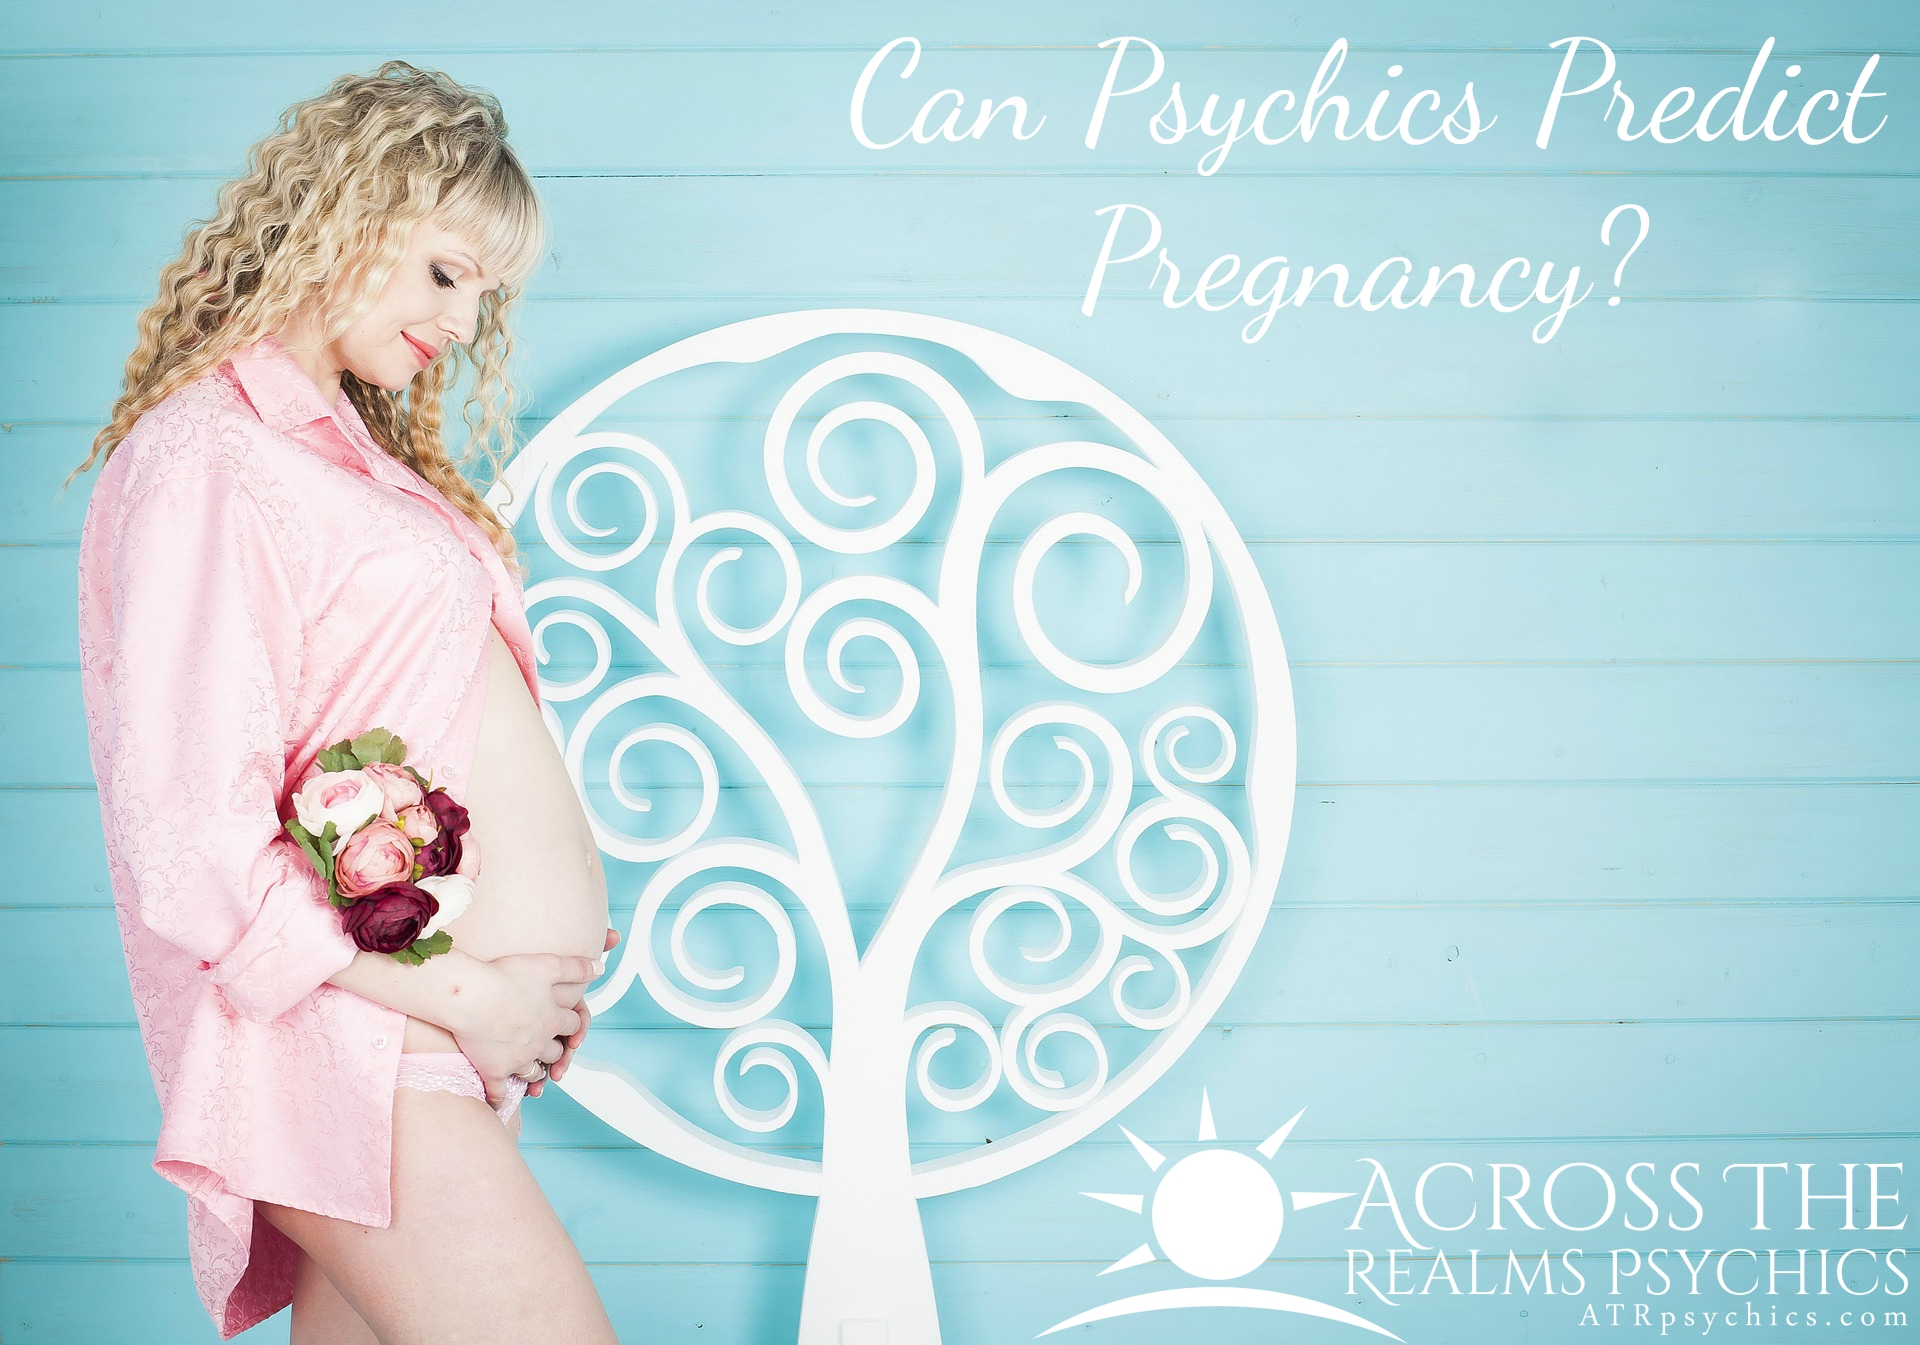 Angel feathers i signs i color meanings i messages i symbolic can a psychic predict pregnancy buycottarizona